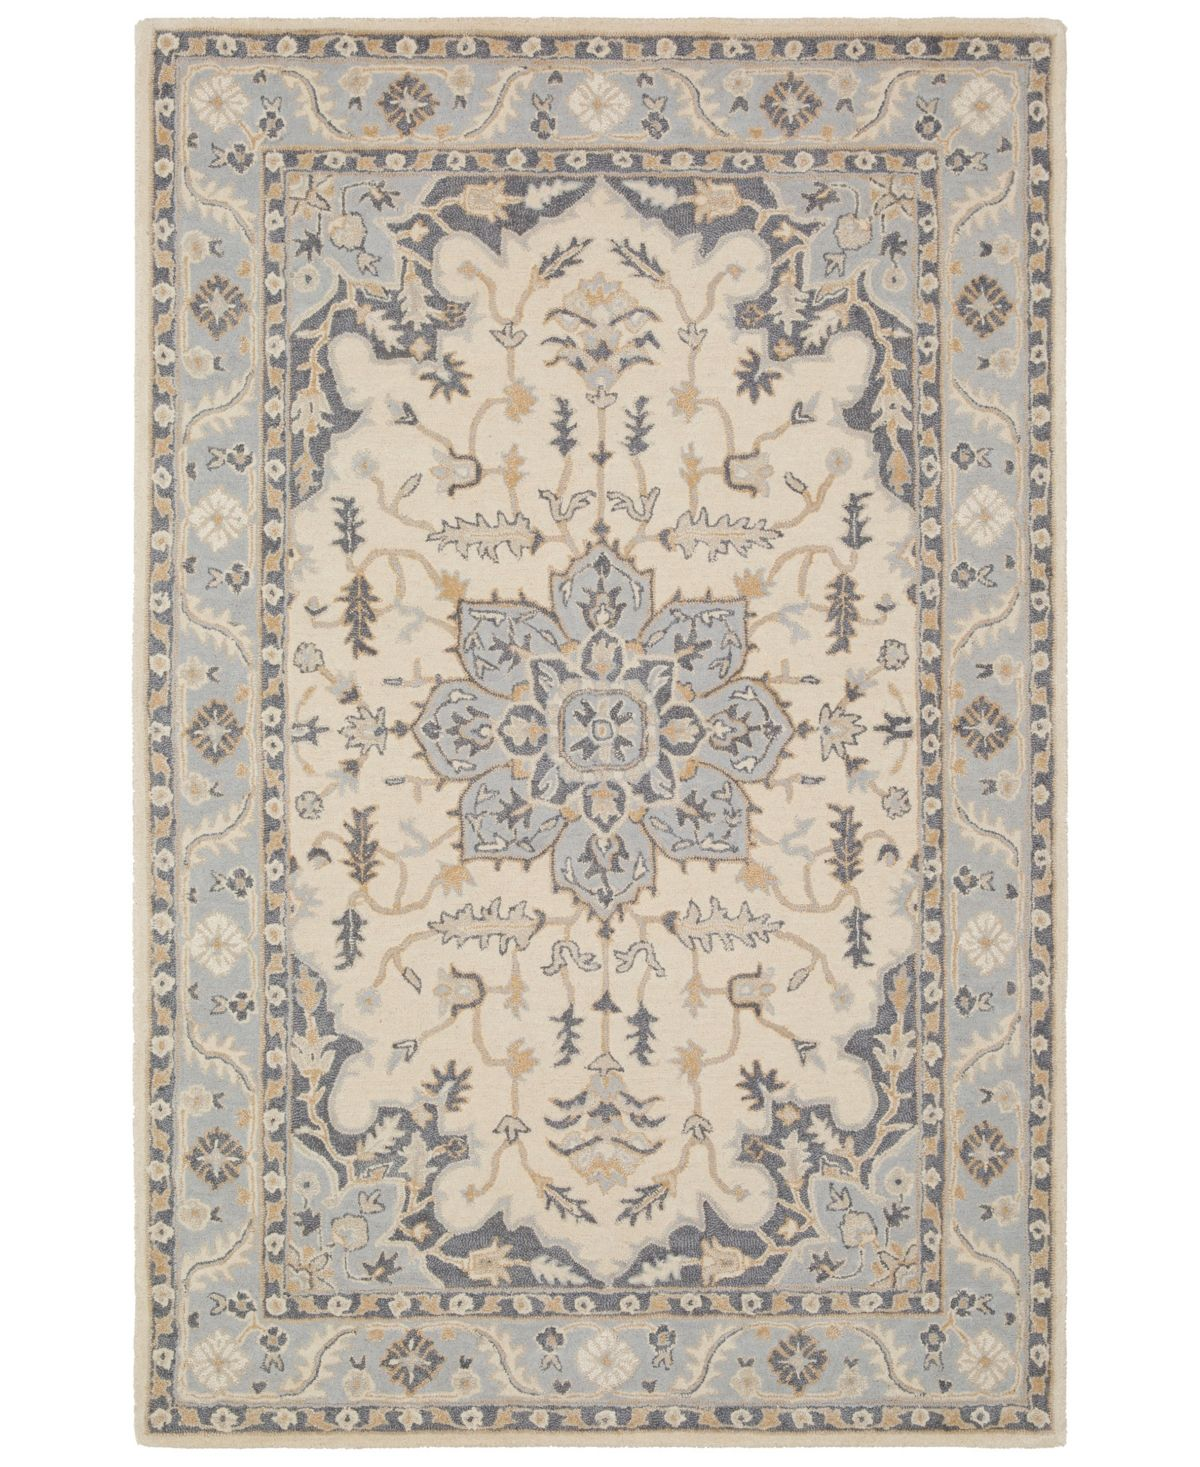 Surya Viva Vva 1003 Light Gray 8 X 10 Area Rug Reviews Rugs